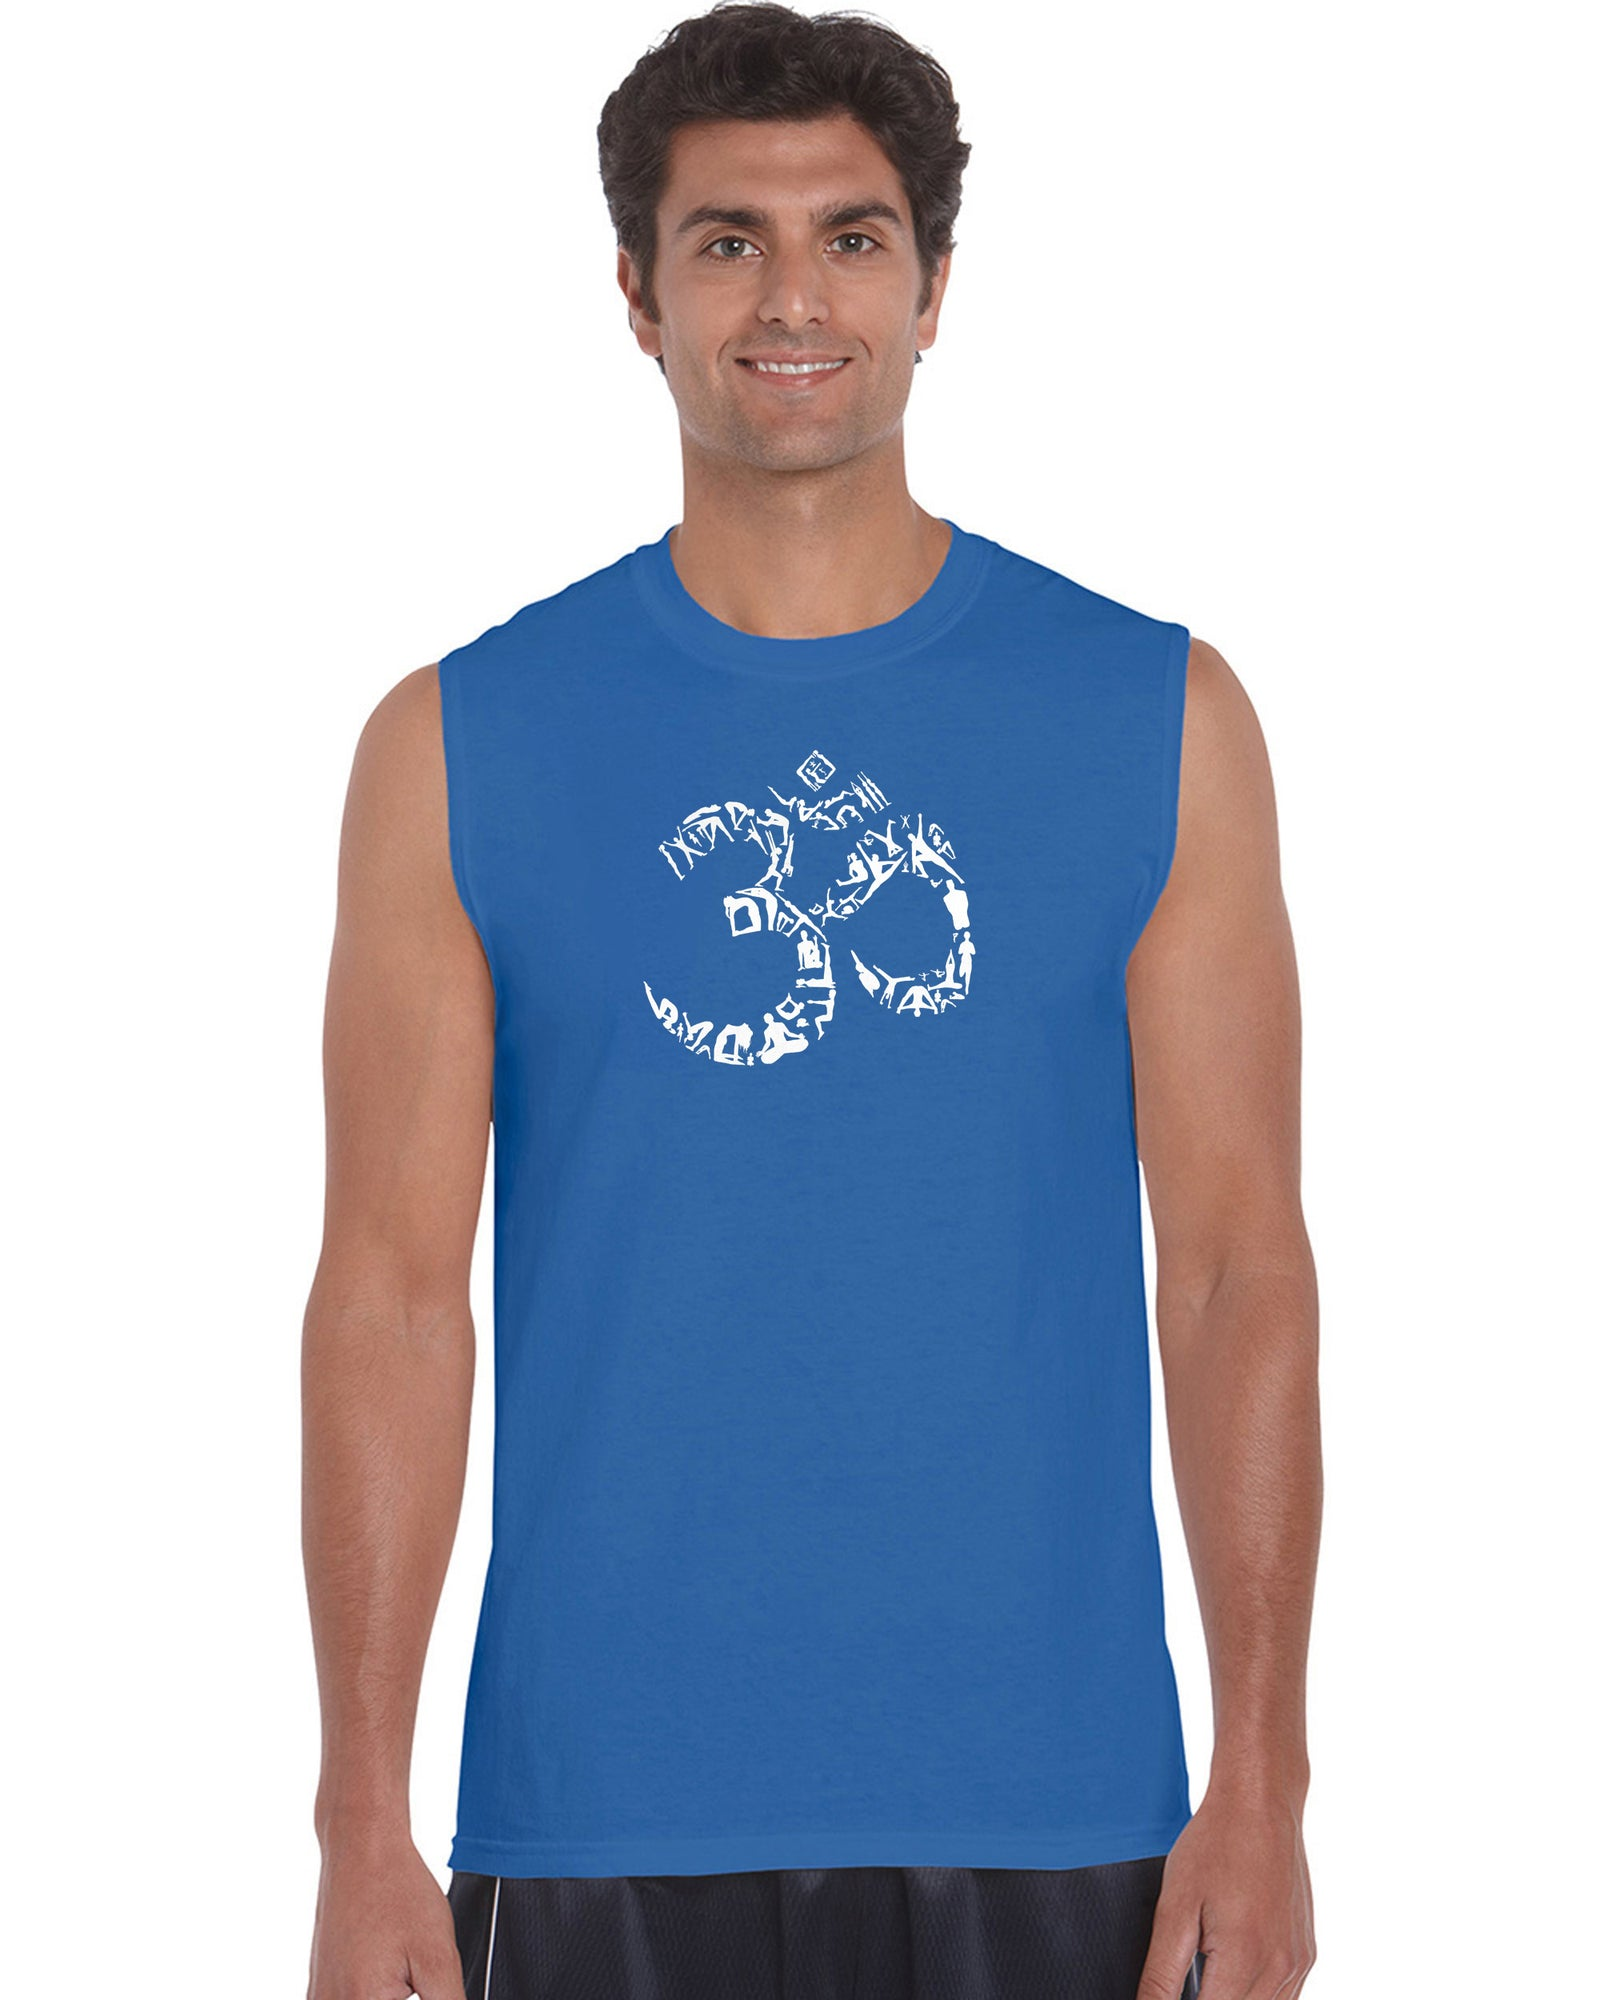 Men's Sleeveless T-shirt - THE OM SYMBOL OUT OF YOGA POSES